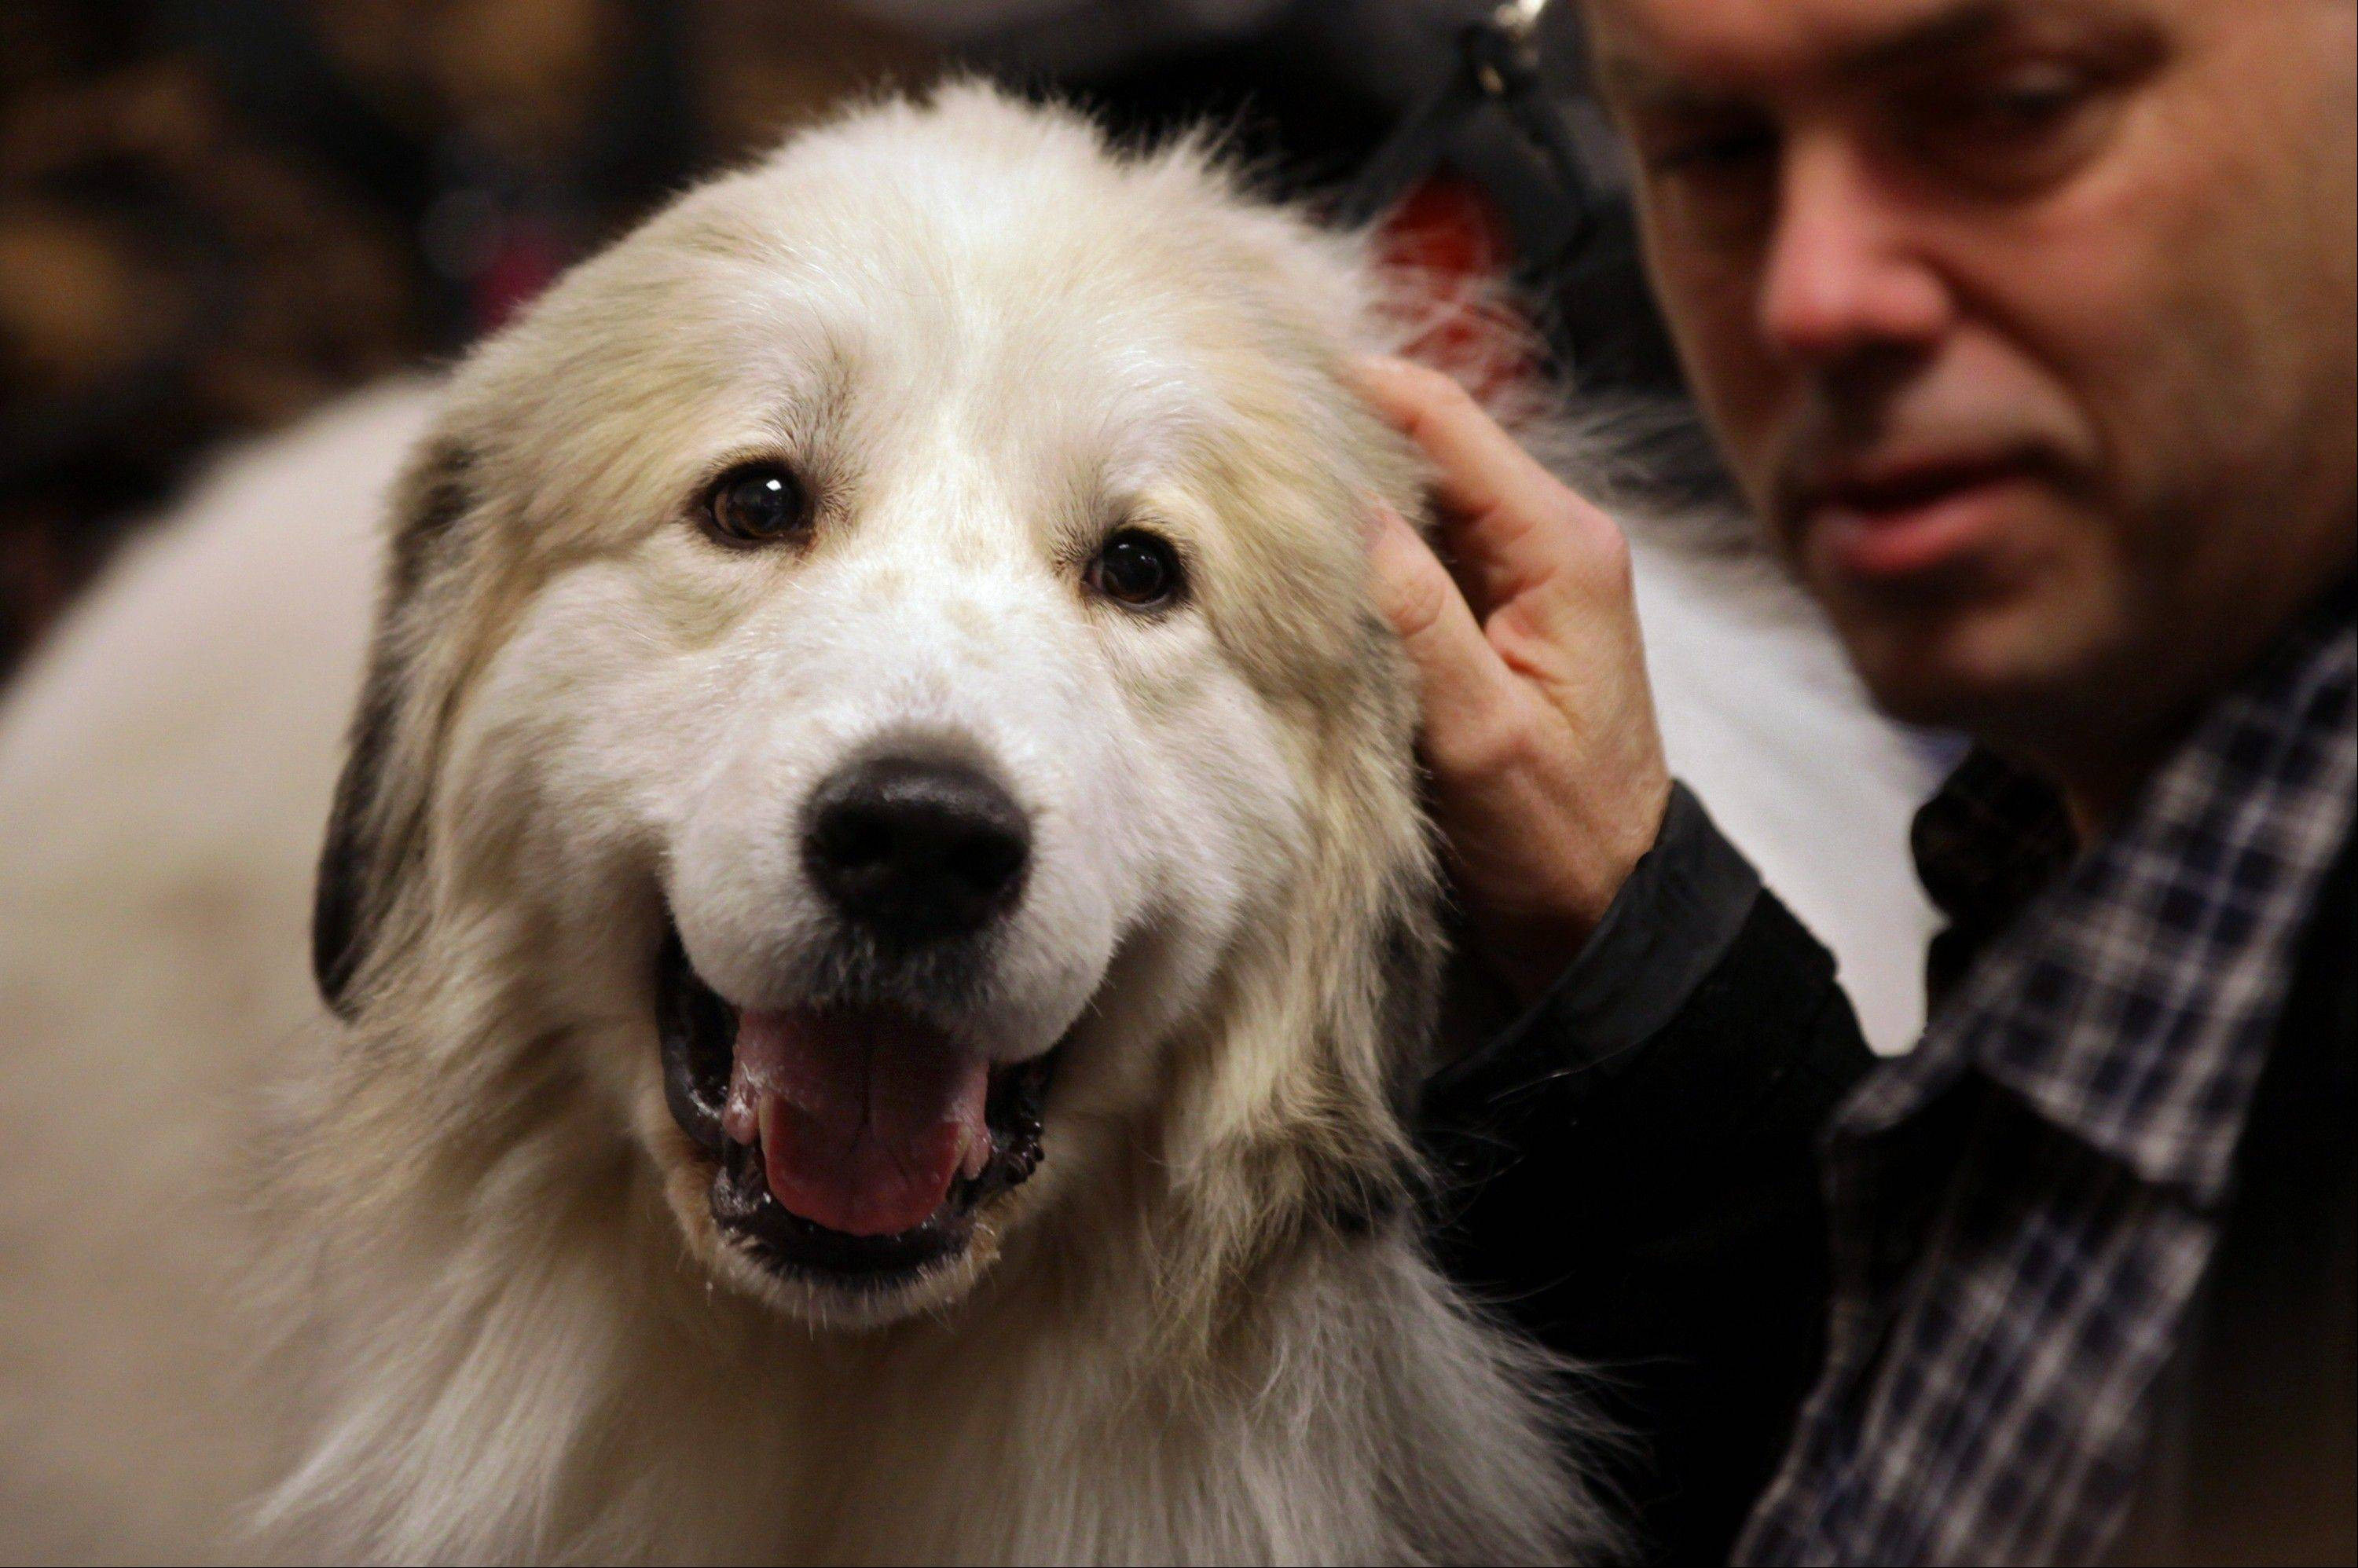 Bob Zeiss of New City, N.Y. pets Maxwell Smart, a great pyrenees from LeRoy, N.Y. in the backstage area.